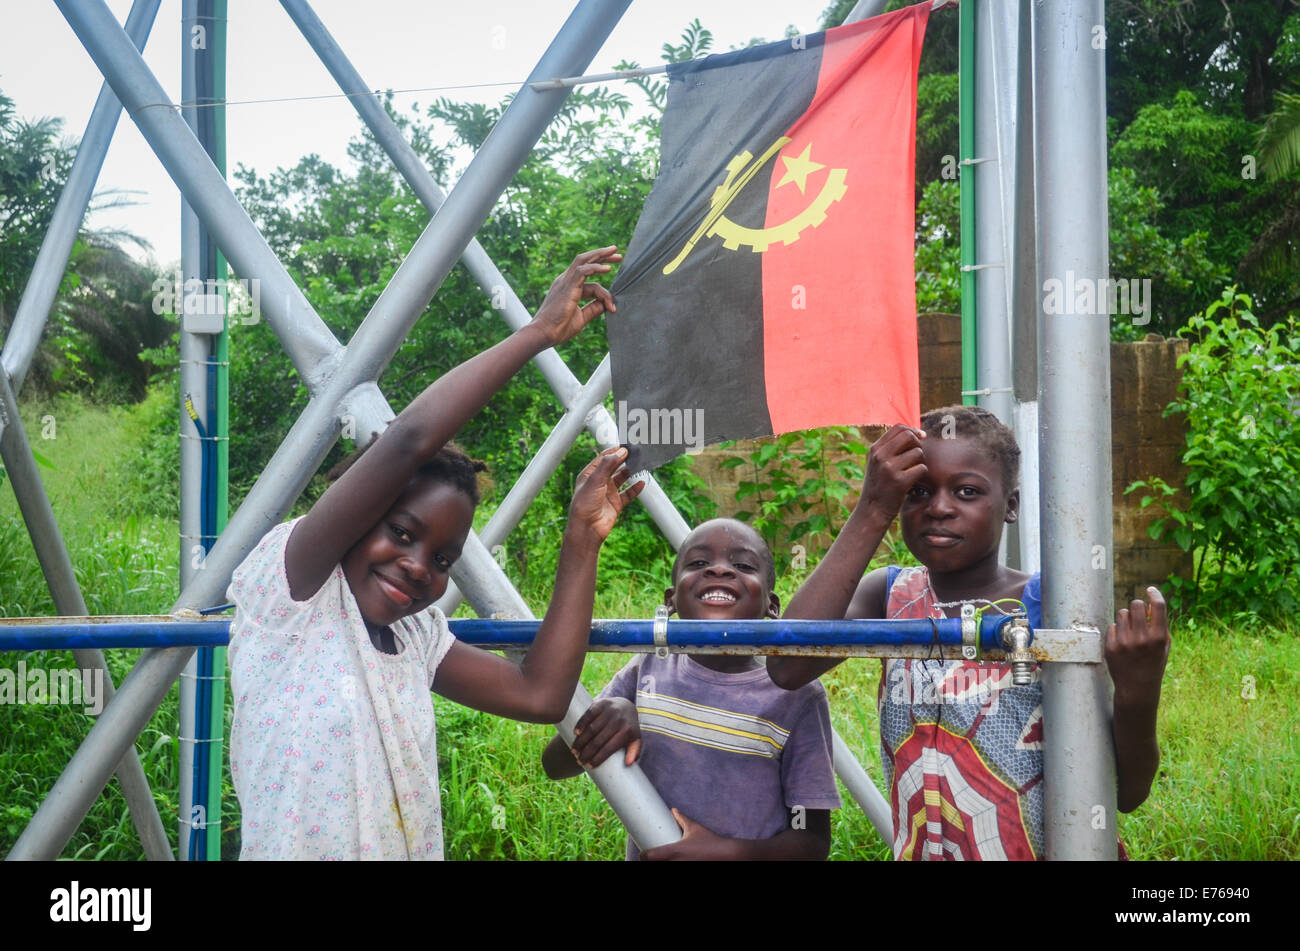 Smiling Angolan children posing with the flag of Angola - Stock Image